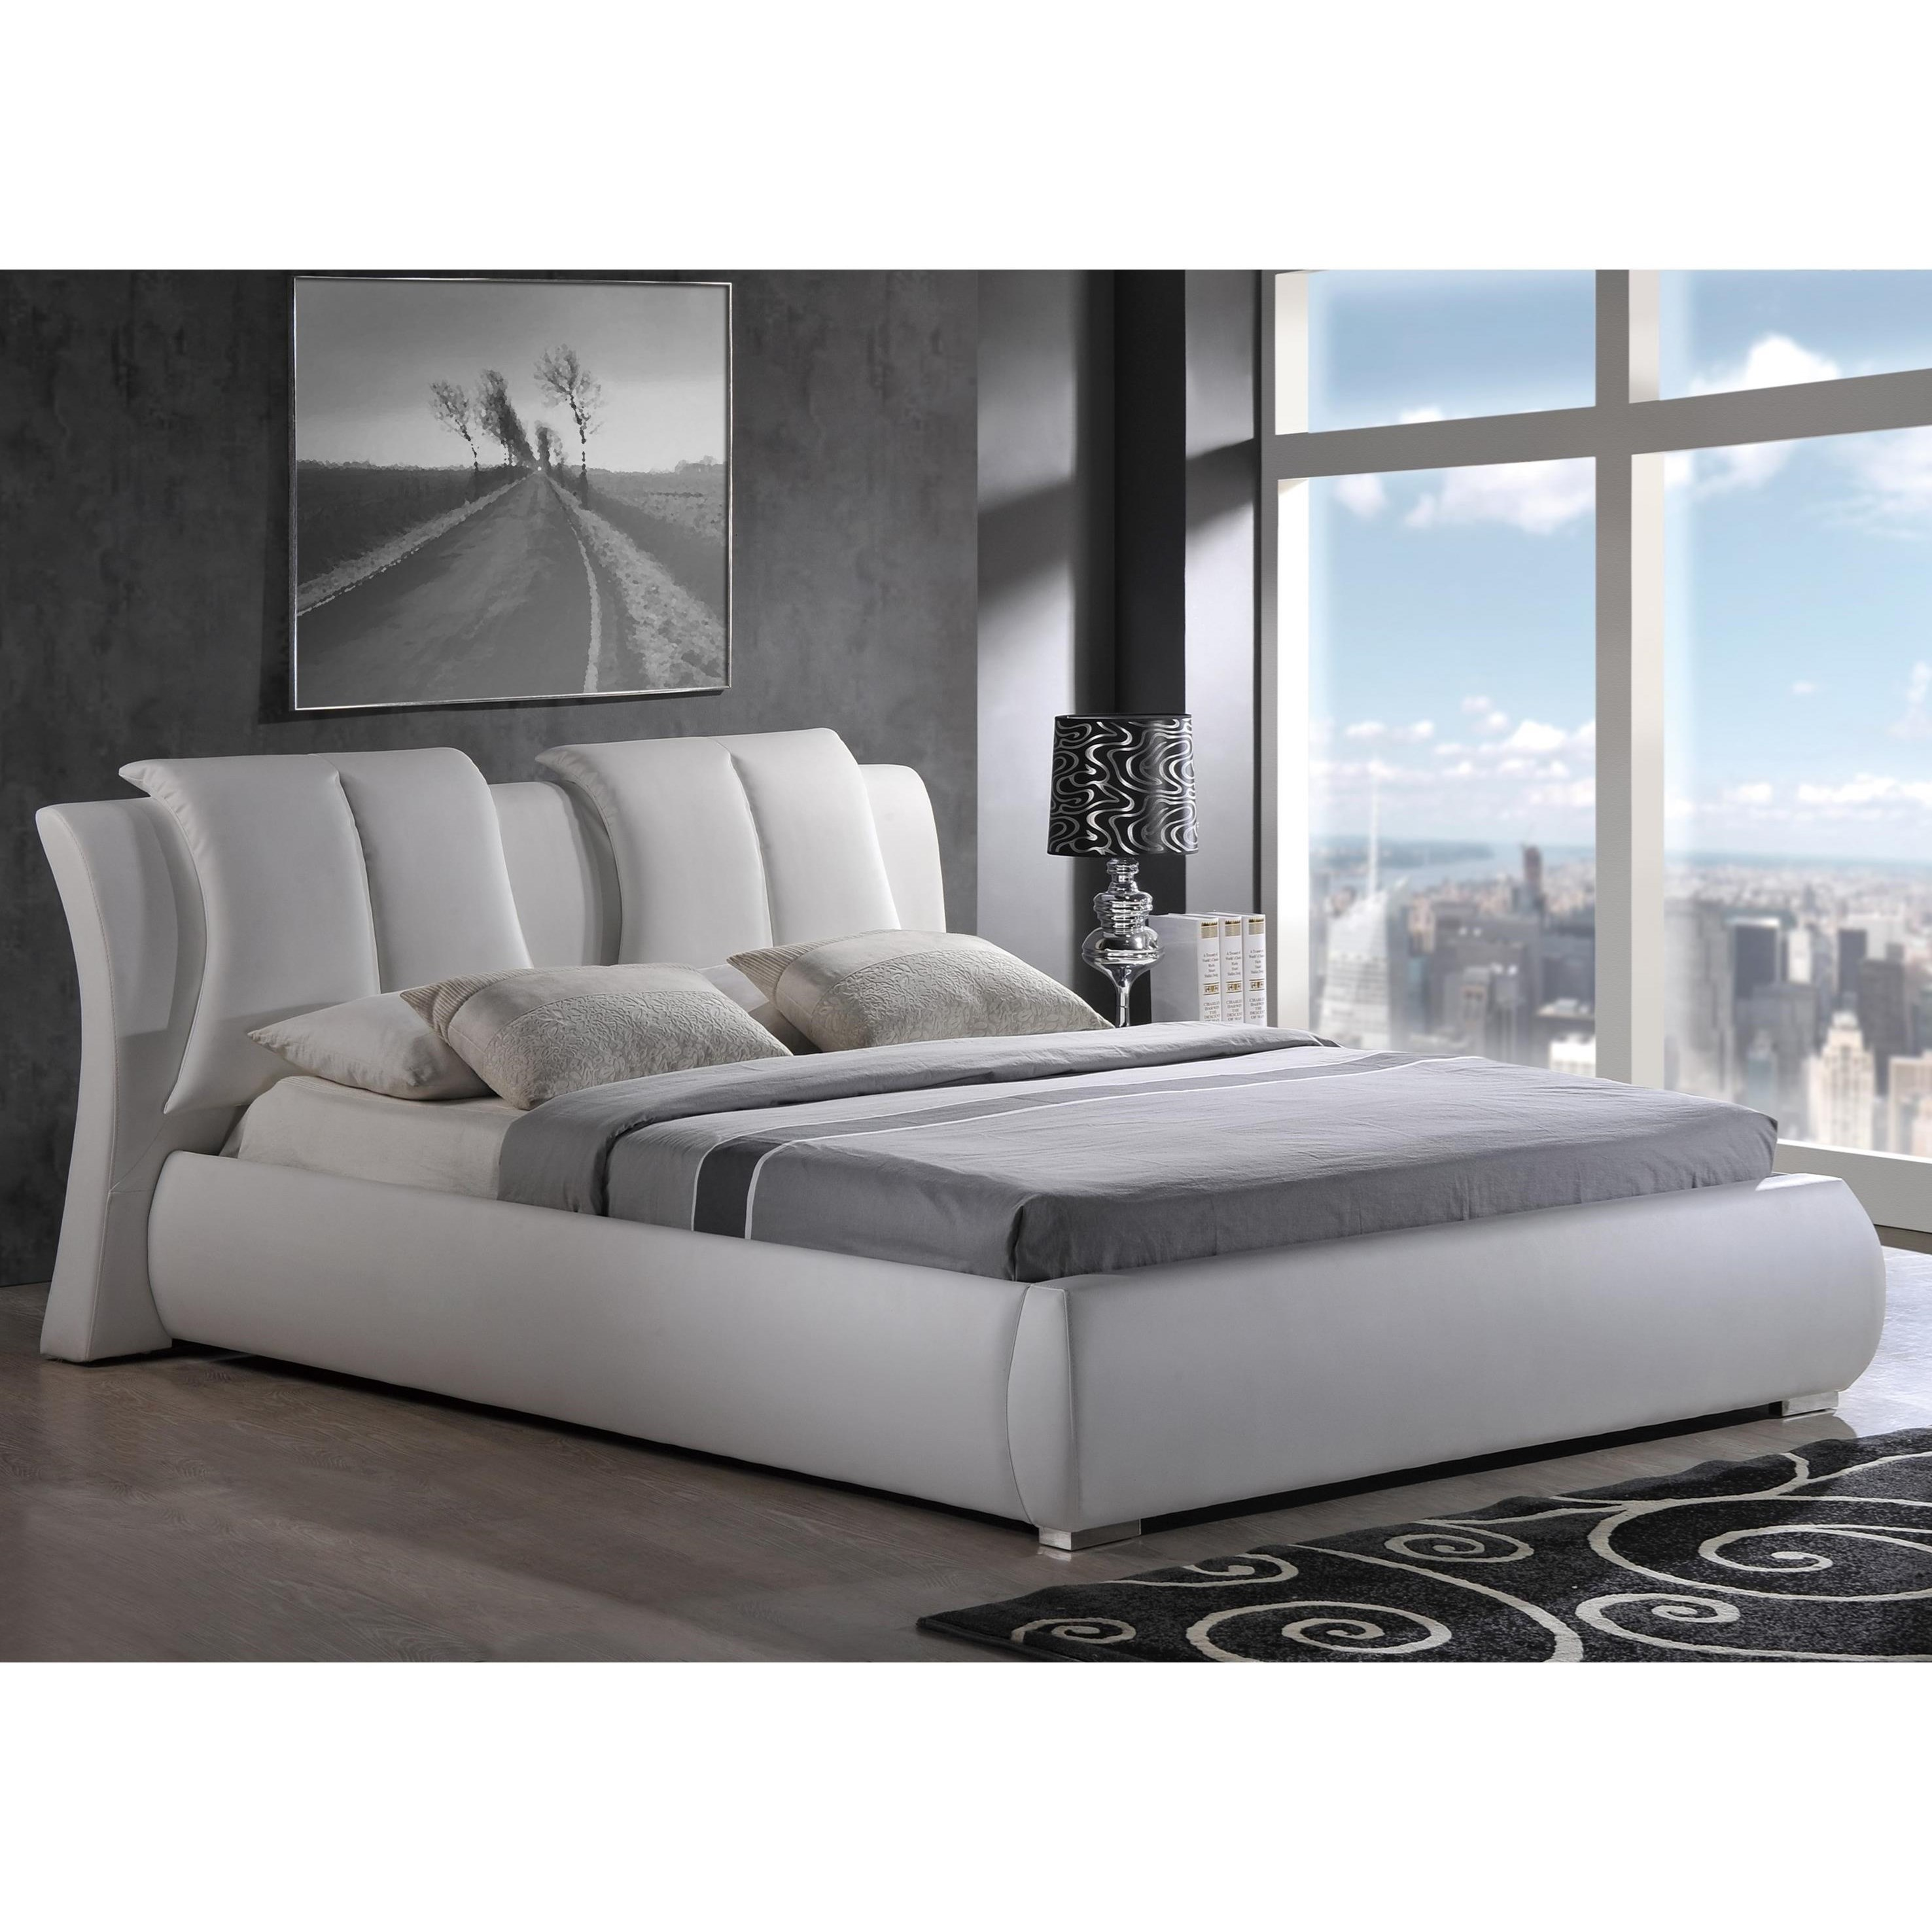 8269 Padded Queen Bed by Global Furniture at Corner Furniture